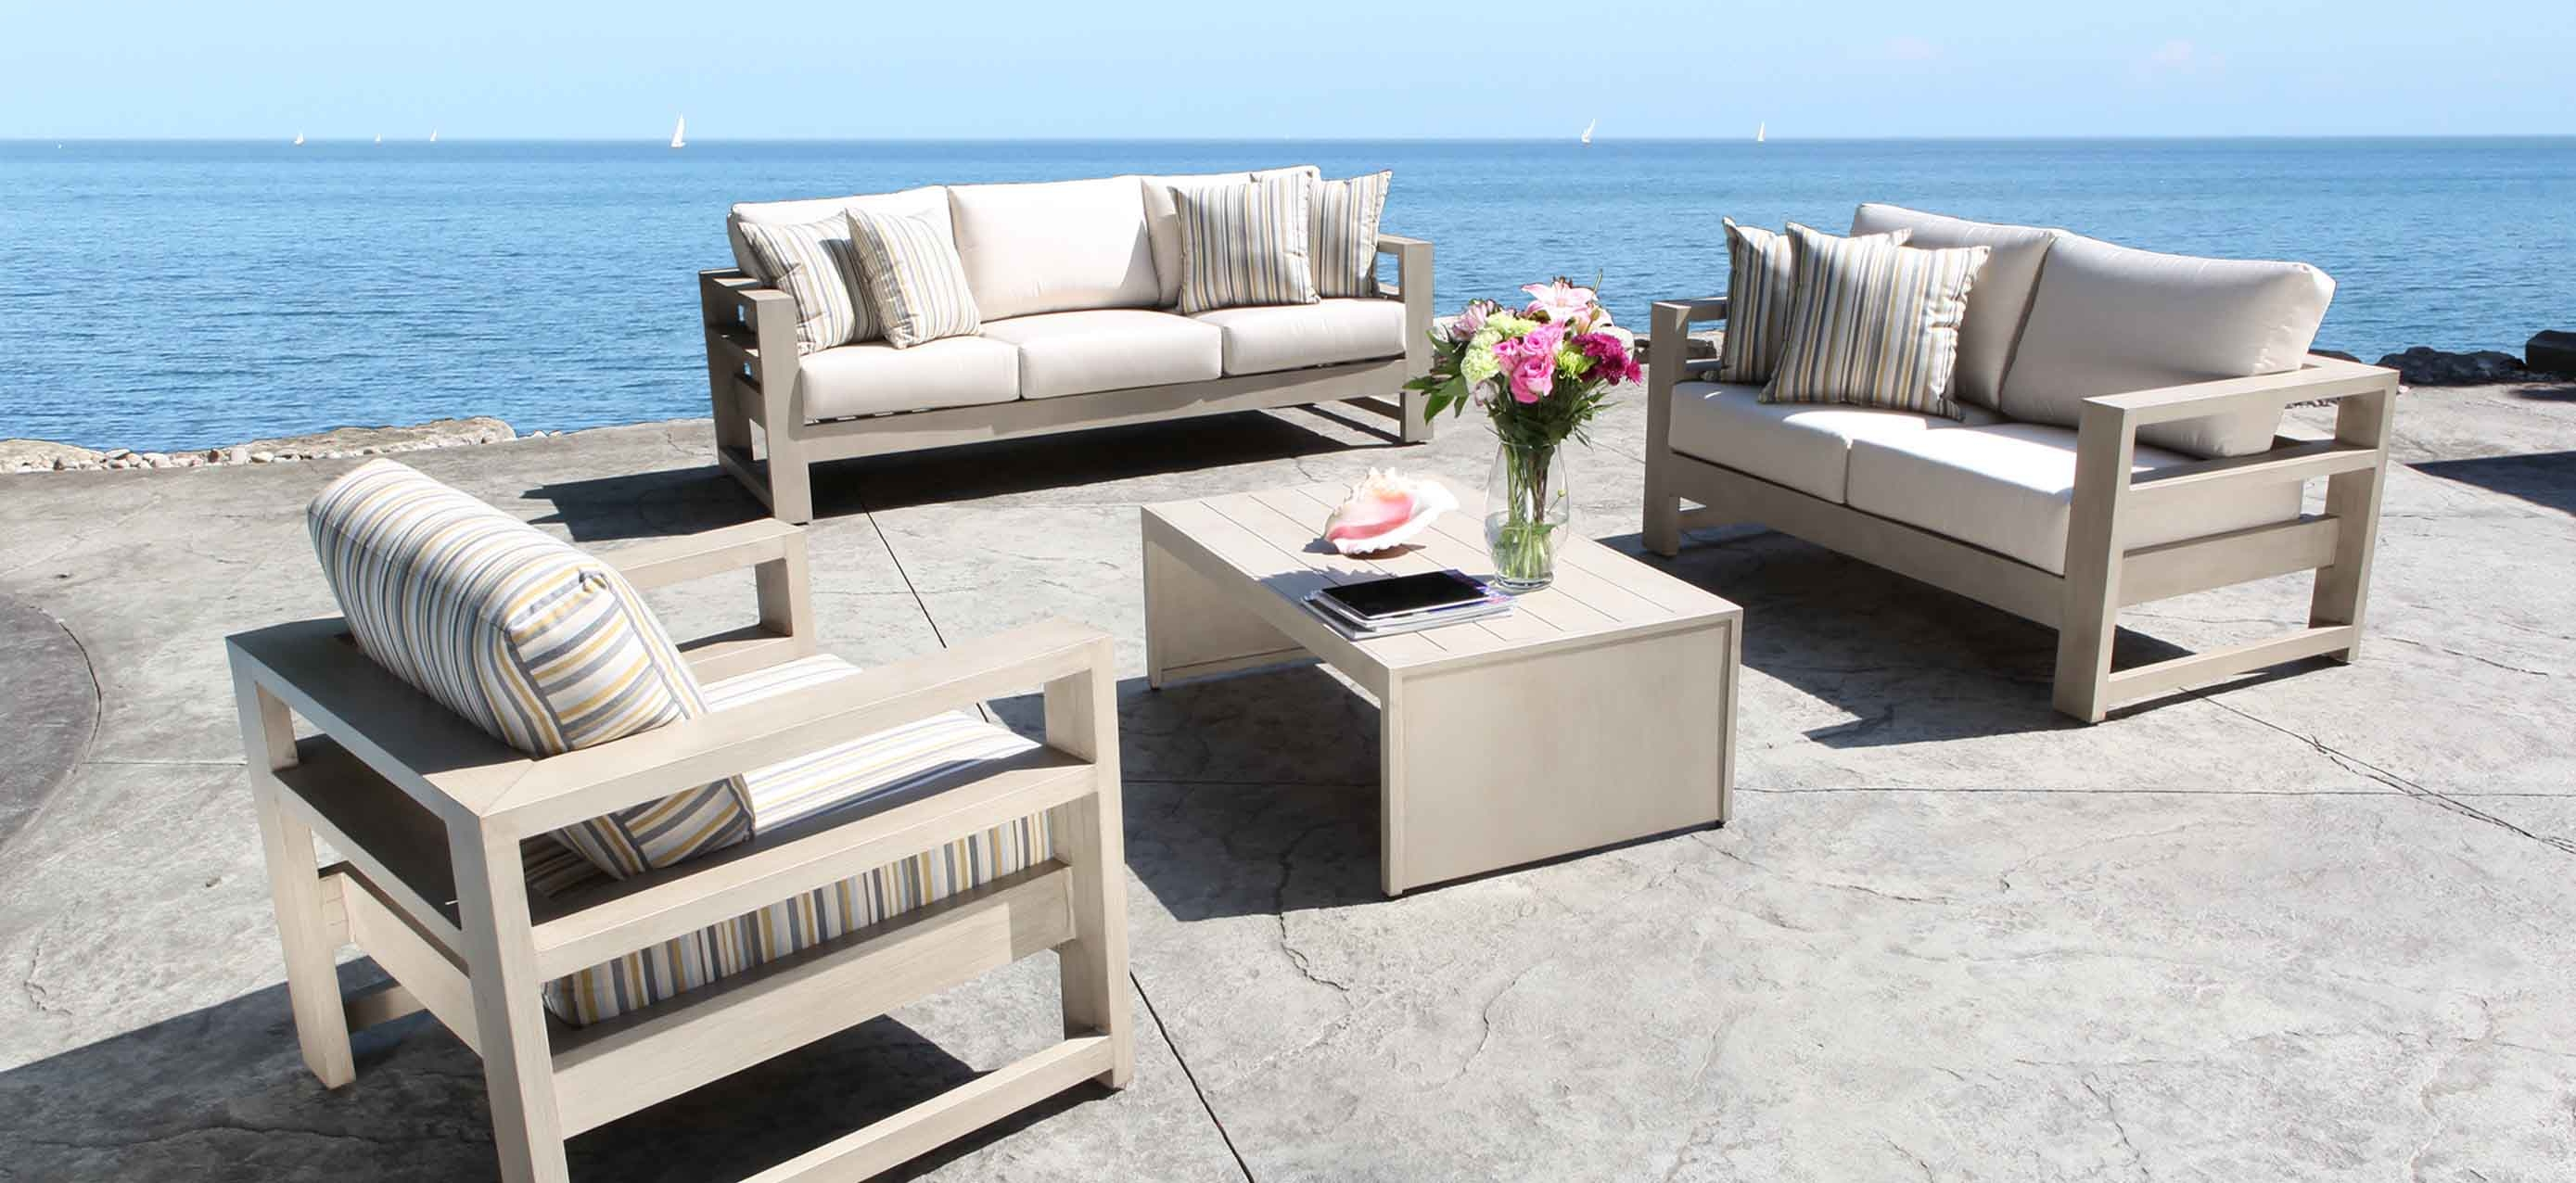 cast aluminum patio furniture conversation sets outdoor table and chairs set  my home plus beautiful images